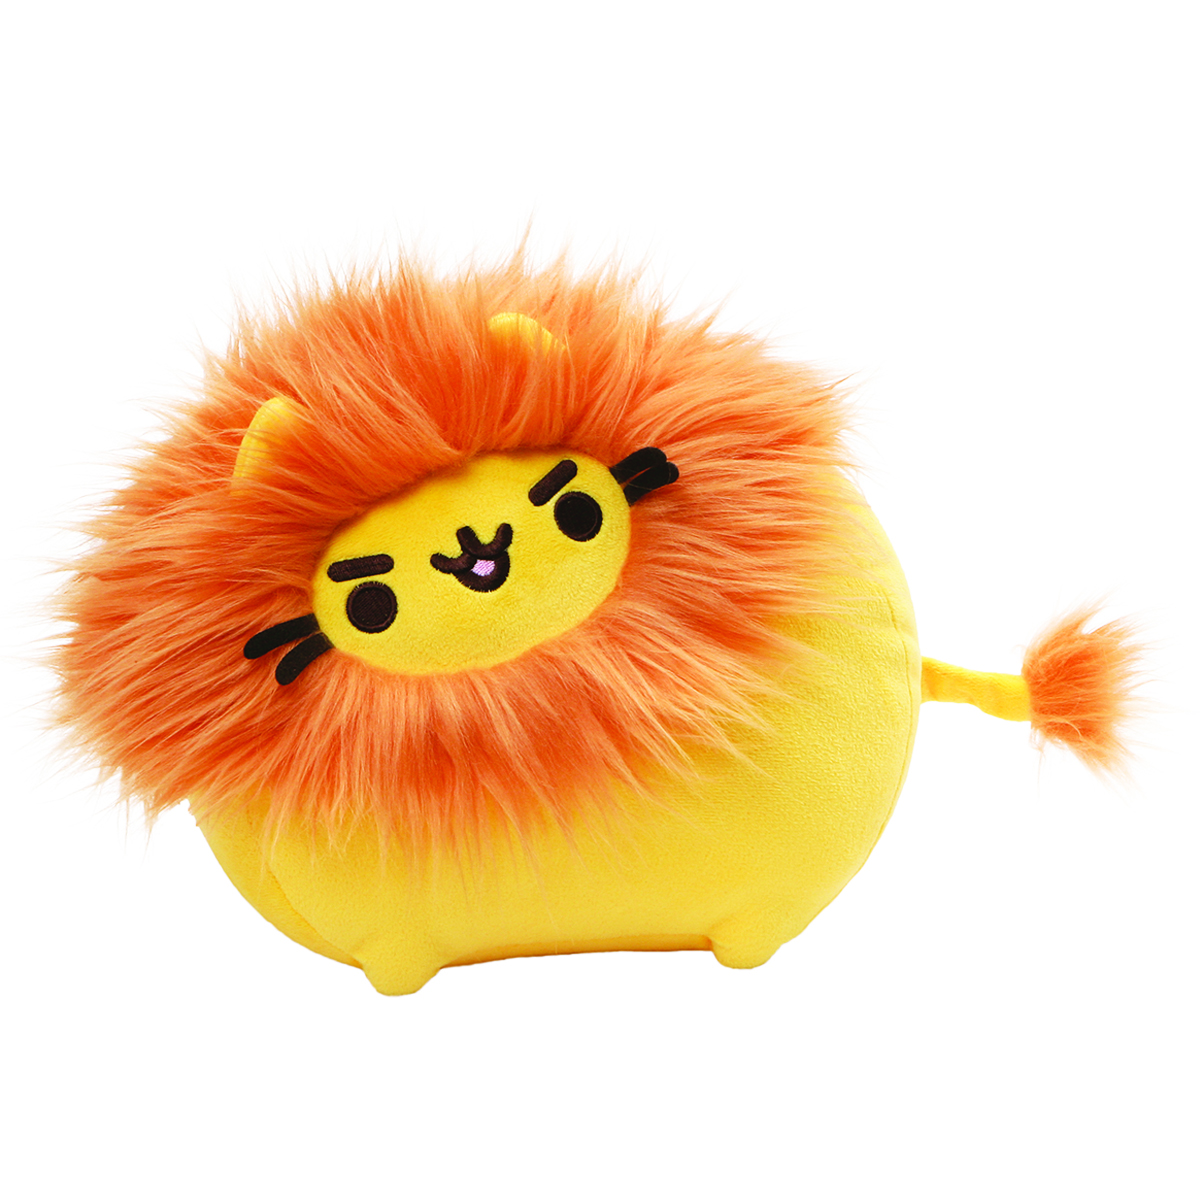 Peluche créateur \'Pusheen\' (lion) orange - 22 cm - [Q1859]